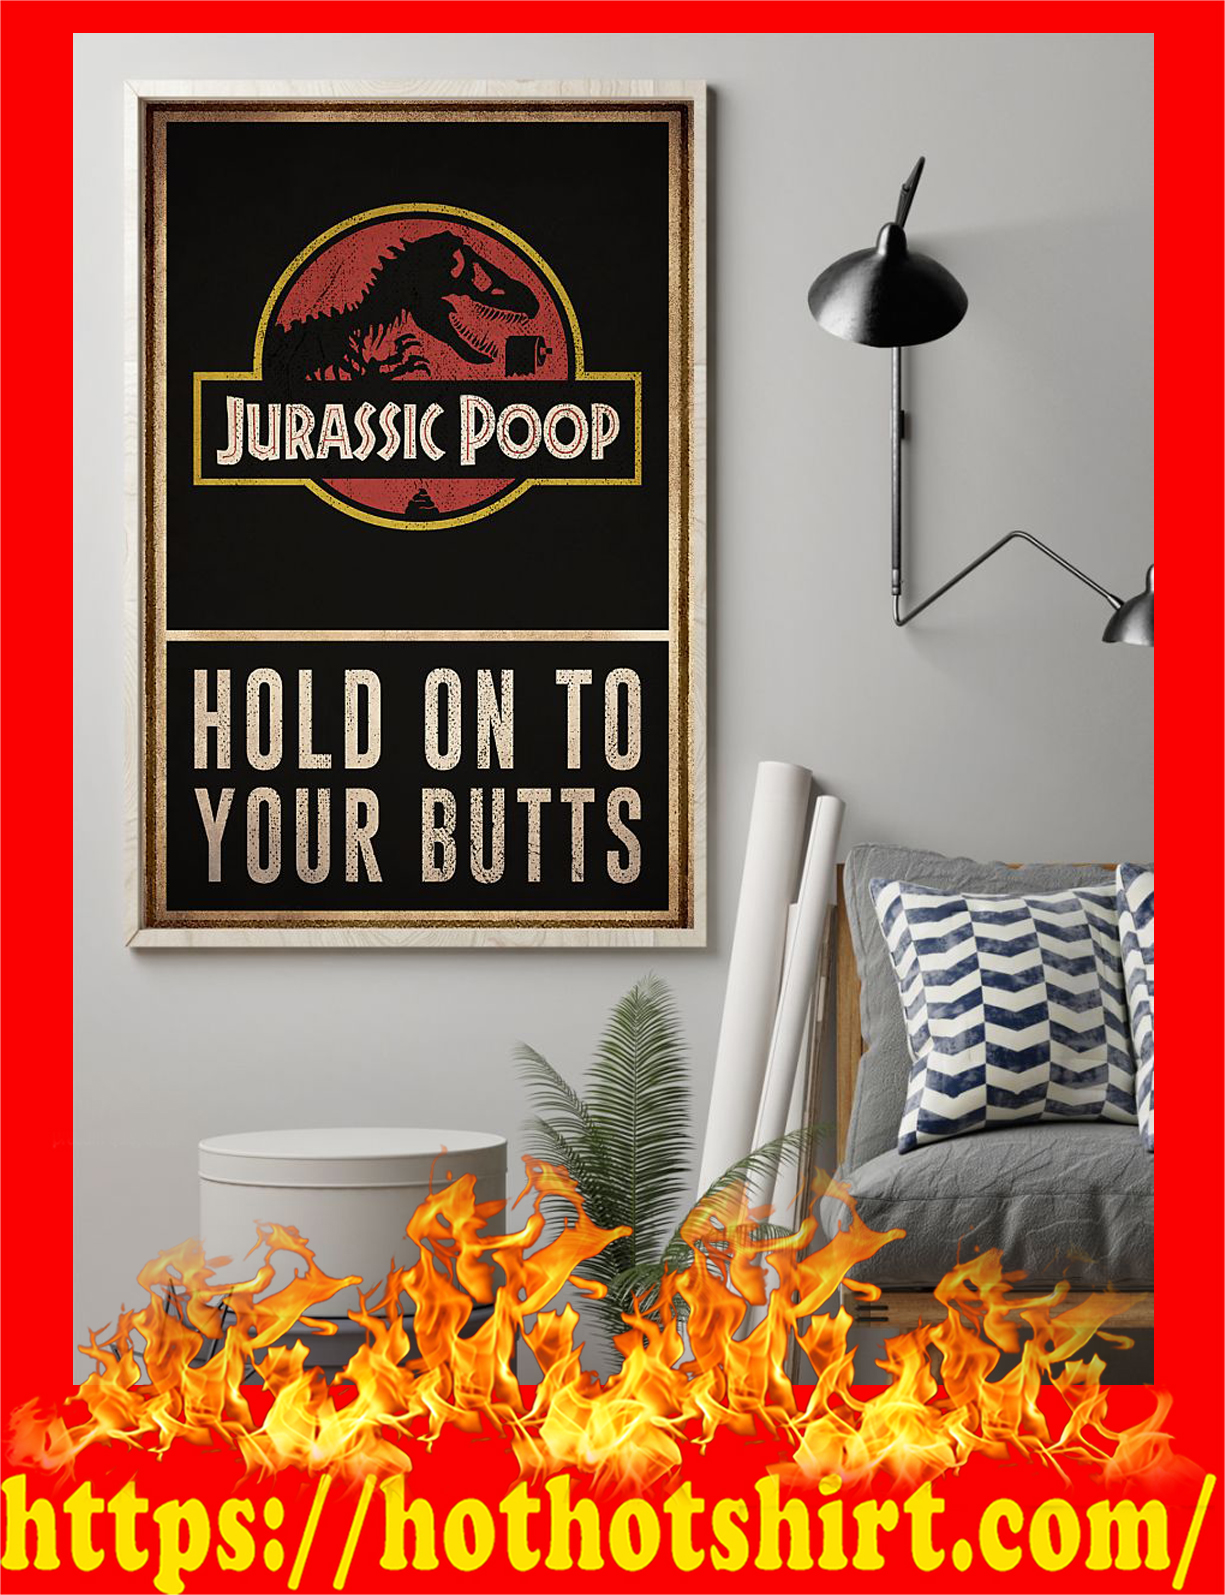 Jurassic poop hold on to your butts poster - Pic 2